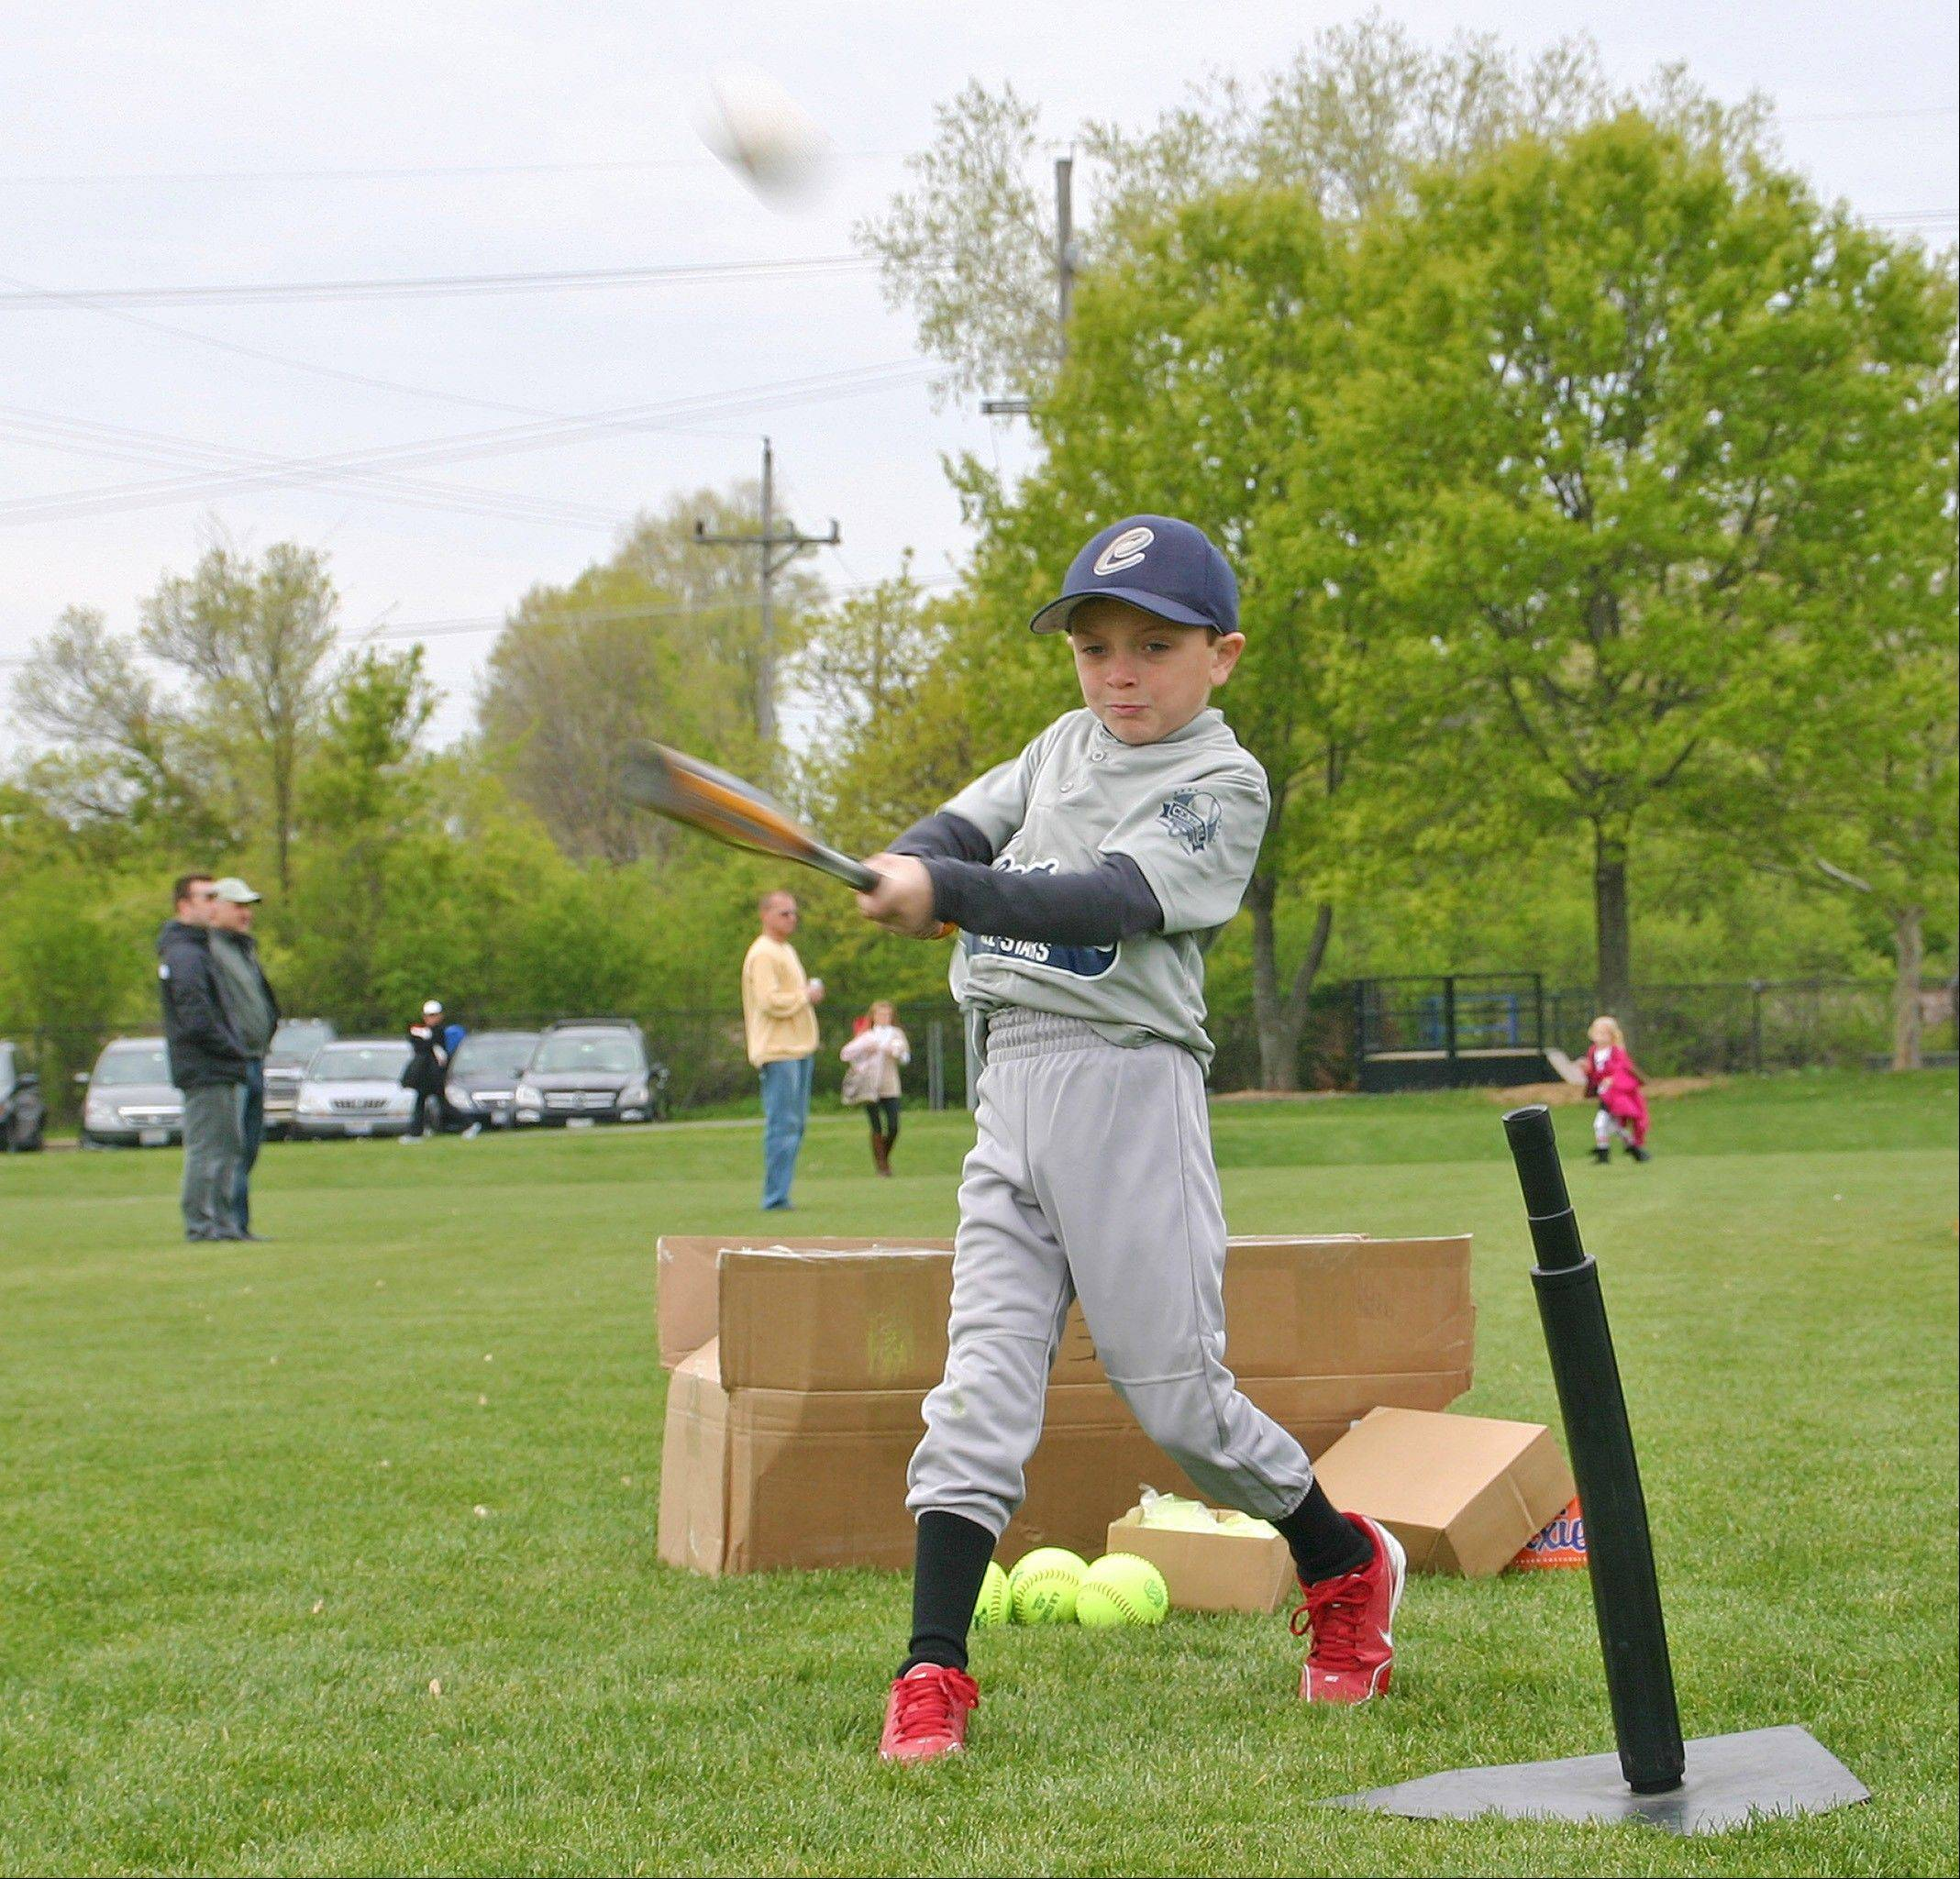 Boys and girls, ages 7-14, are invited to the free Aquafina Major League Baseball Pitch, Hit & Run Competition on April 28 at West Park.